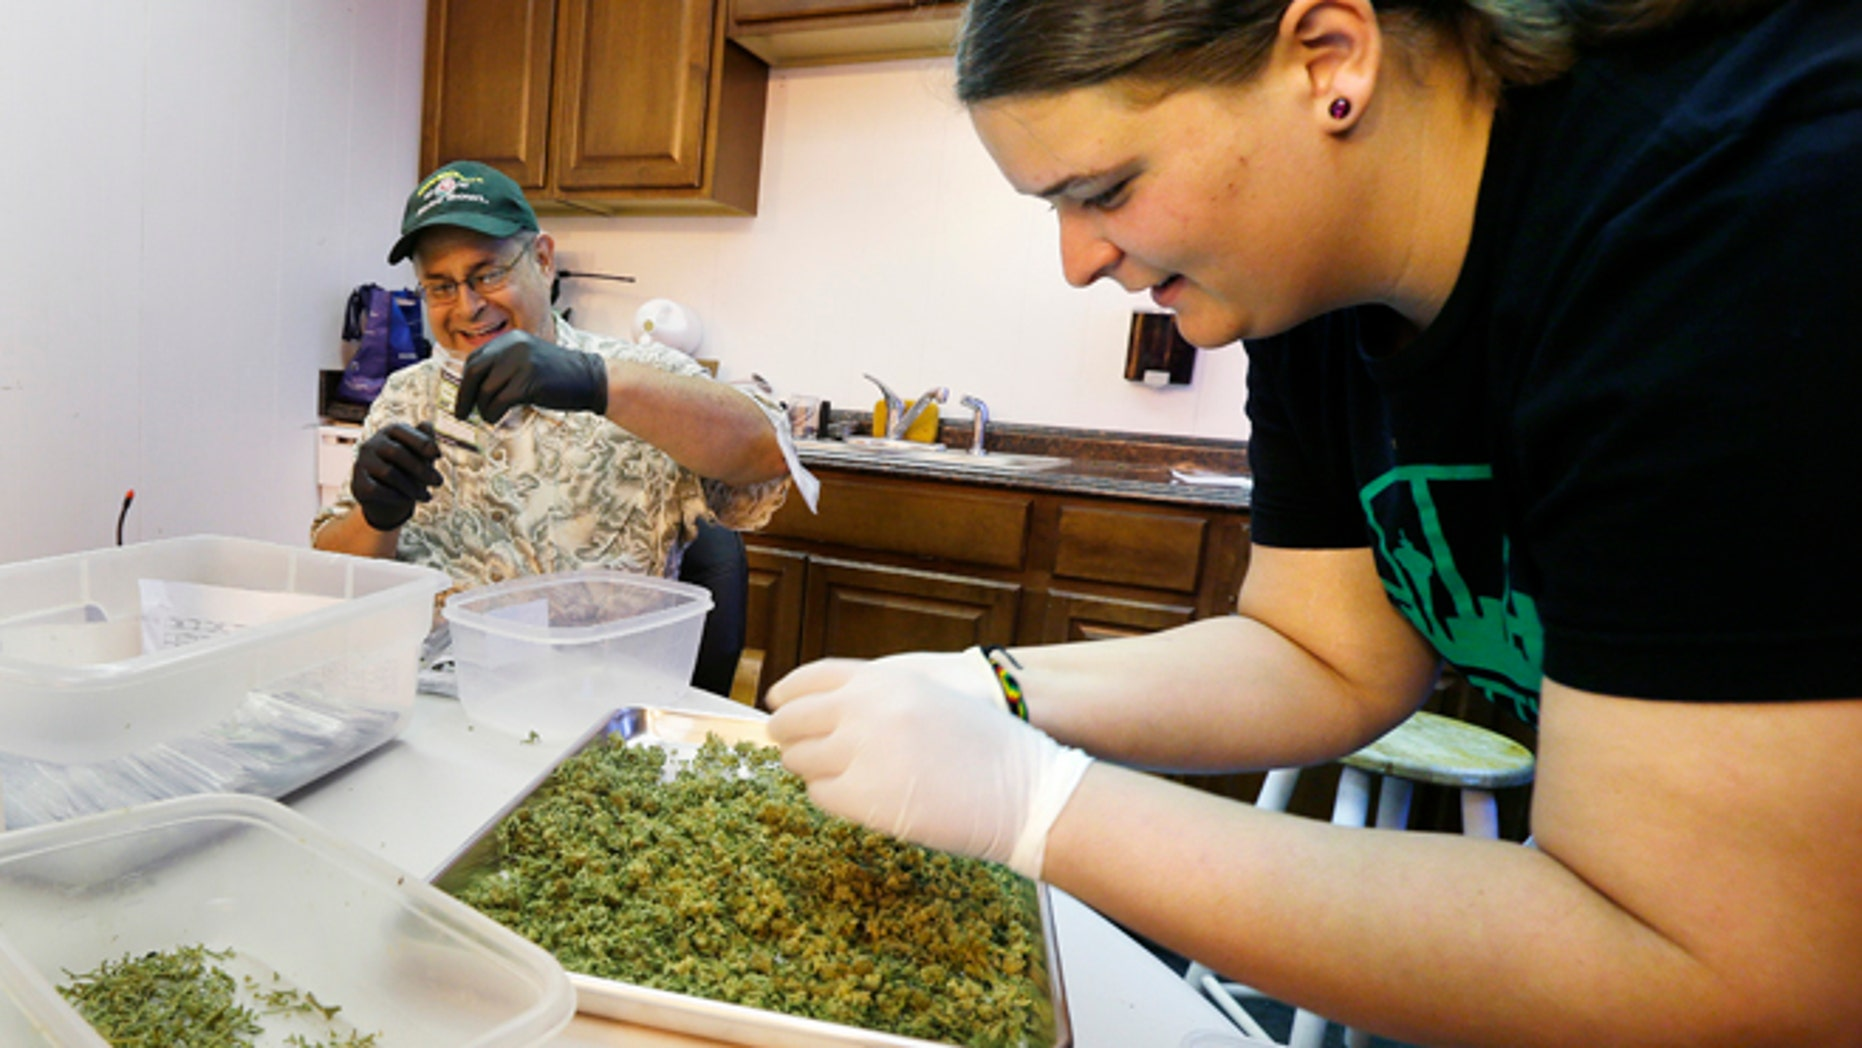 """July 1, 2014: In this photo, workers Kristi Tobias, right, and Bruce Cumming prepare packets of a variety of recreational marijuana named """"Space Needle"""" at Sea of Green Farms in Seattle. Workers at the grower, the first business licensed to grow recreational marijuana in Washington state, worked all weekend to have supplies ready for stores that were expected to be granted sale licenses on Monday, the day before the first day of legal recreational pot sales in Washington state."""